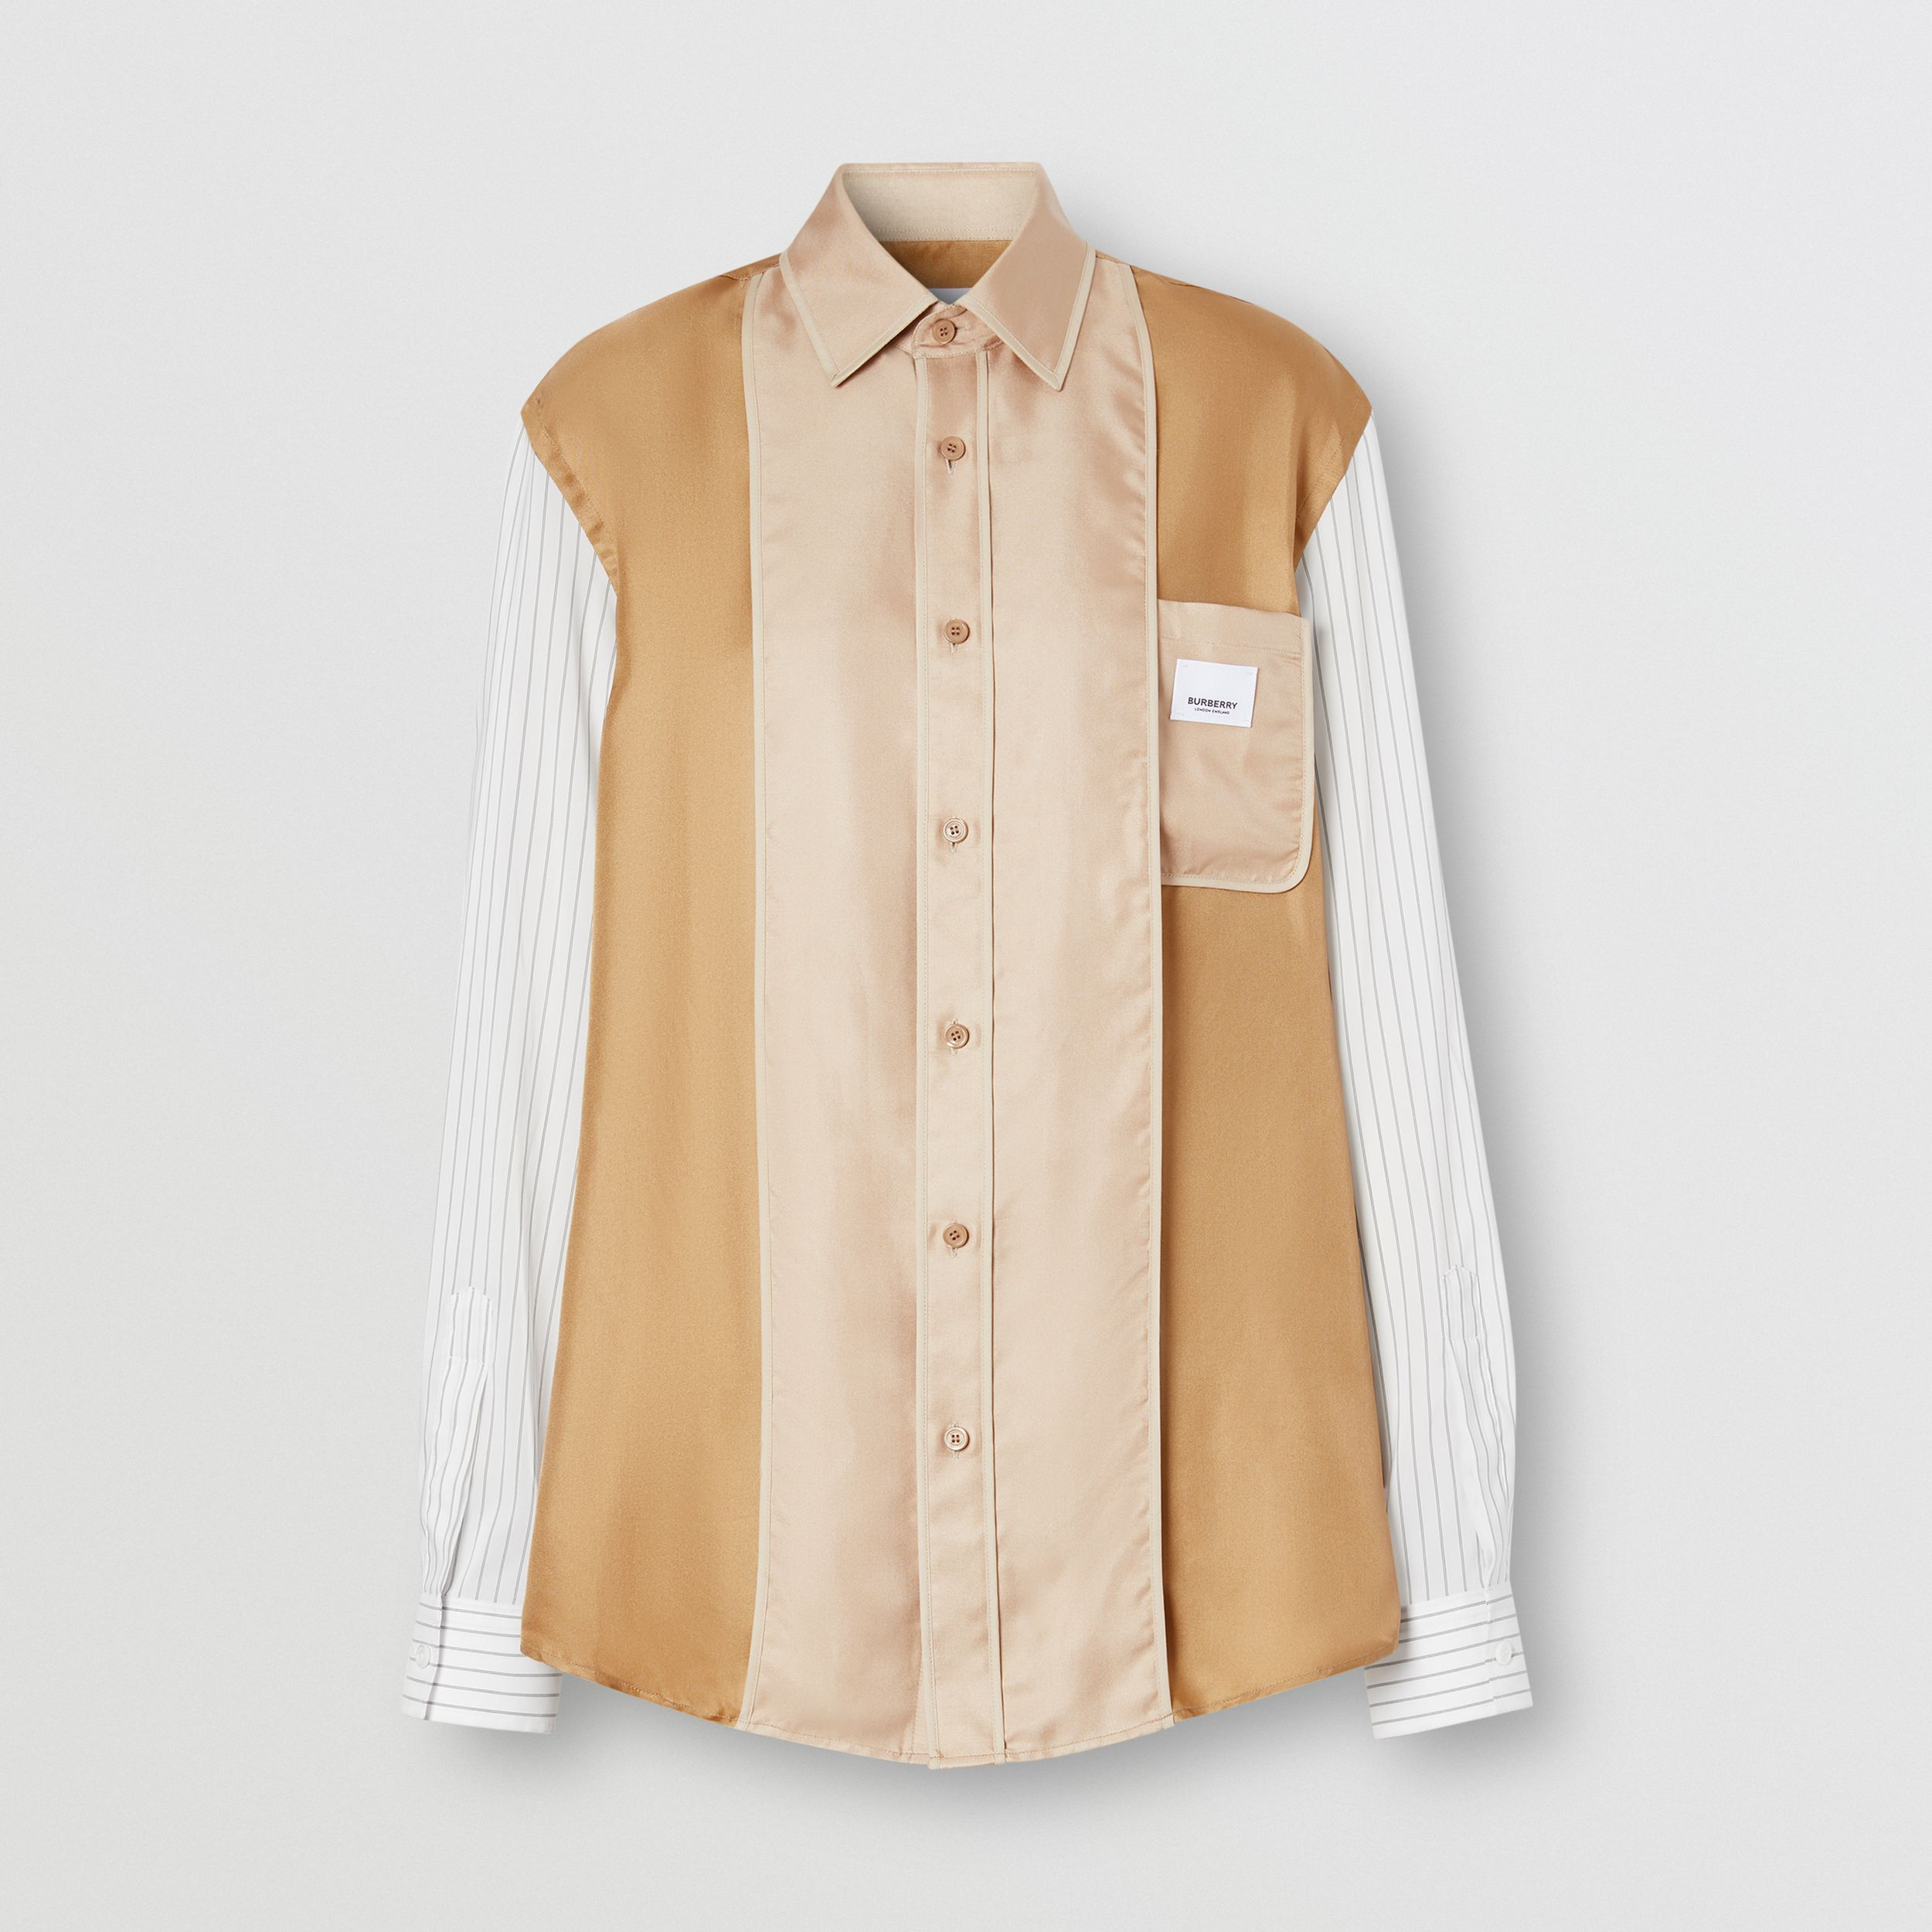 Logo Appliqué Pinstriped Sleeve Silk Shirt in Camel - Women | Burberry - 2